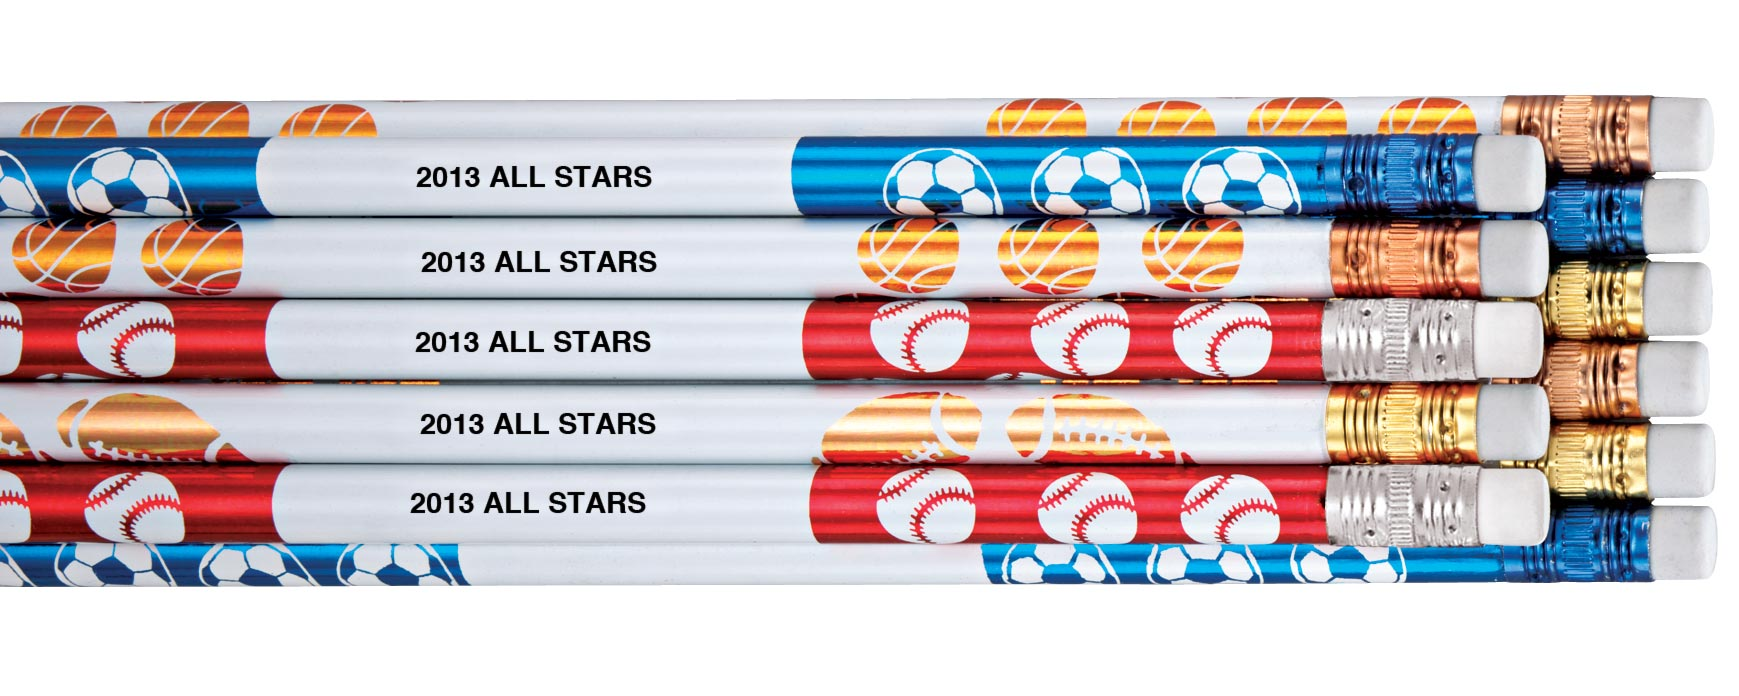 Personalized Sports Pencils - Set Of 12 Set of 12 personalizedonalized sports pencils. Great way to advertise your business. Kids love 'em for school; name imprinted helps prevent loss. Each sports pencil has #2 lead. Print up to 30 letters/spaces; one name or message per set. Custom pencils are ideal promotional giveaways!